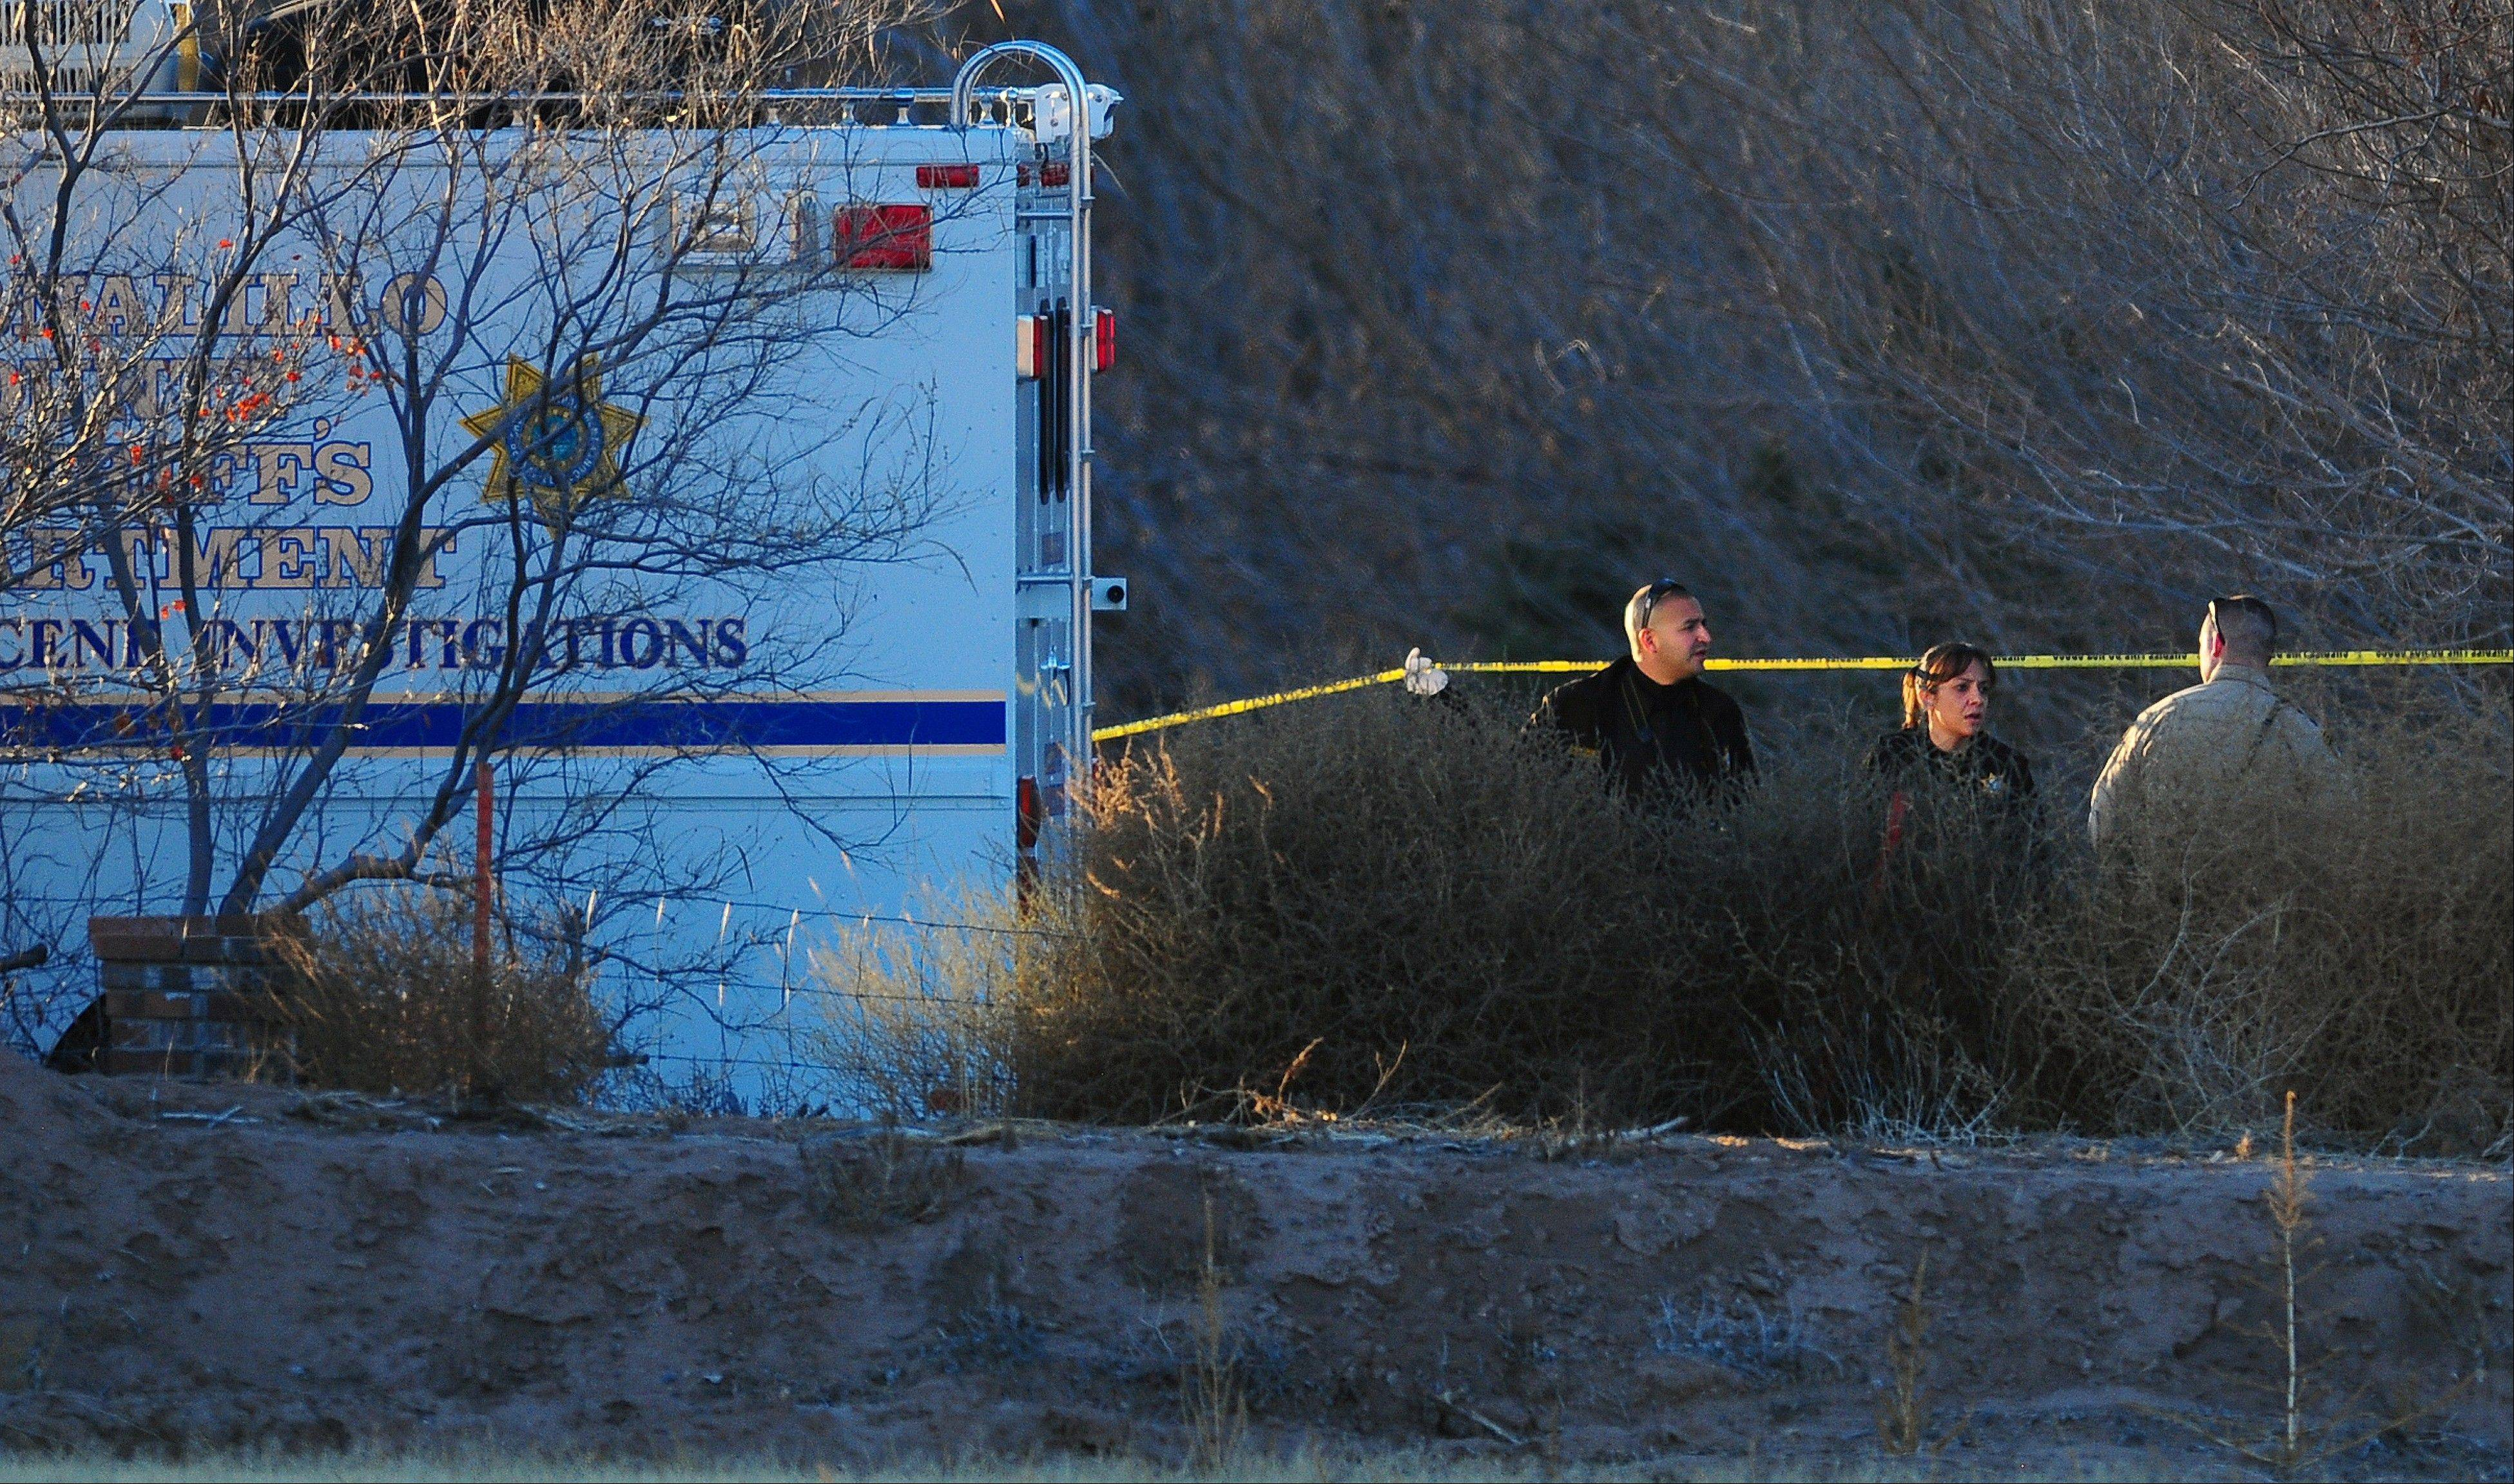 Bernalillo Sheriff Deputies investigate at the scene of the multiple homicide near Albuquerque, N.M., Sunday. A 15-year-old boy was in custody following the shooting deaths the teen�s parents and three young children, all of whom were found dead in a New Mexico home.